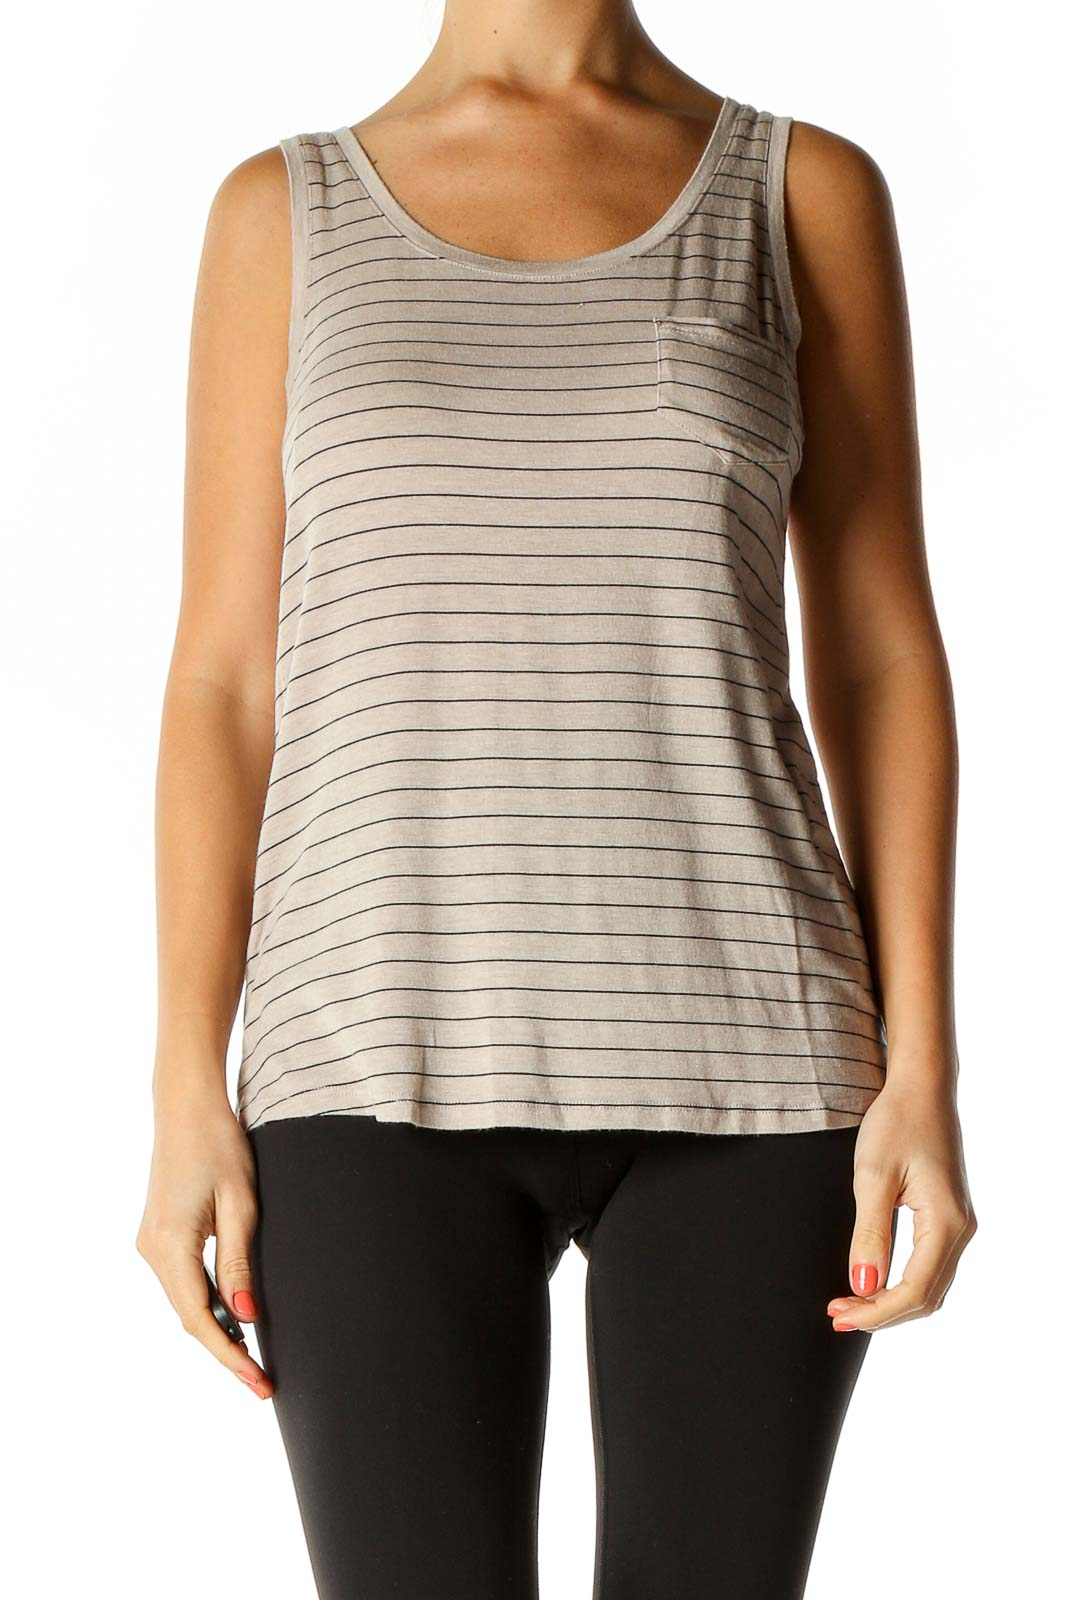 Beige Striped Casual Tank Top Front